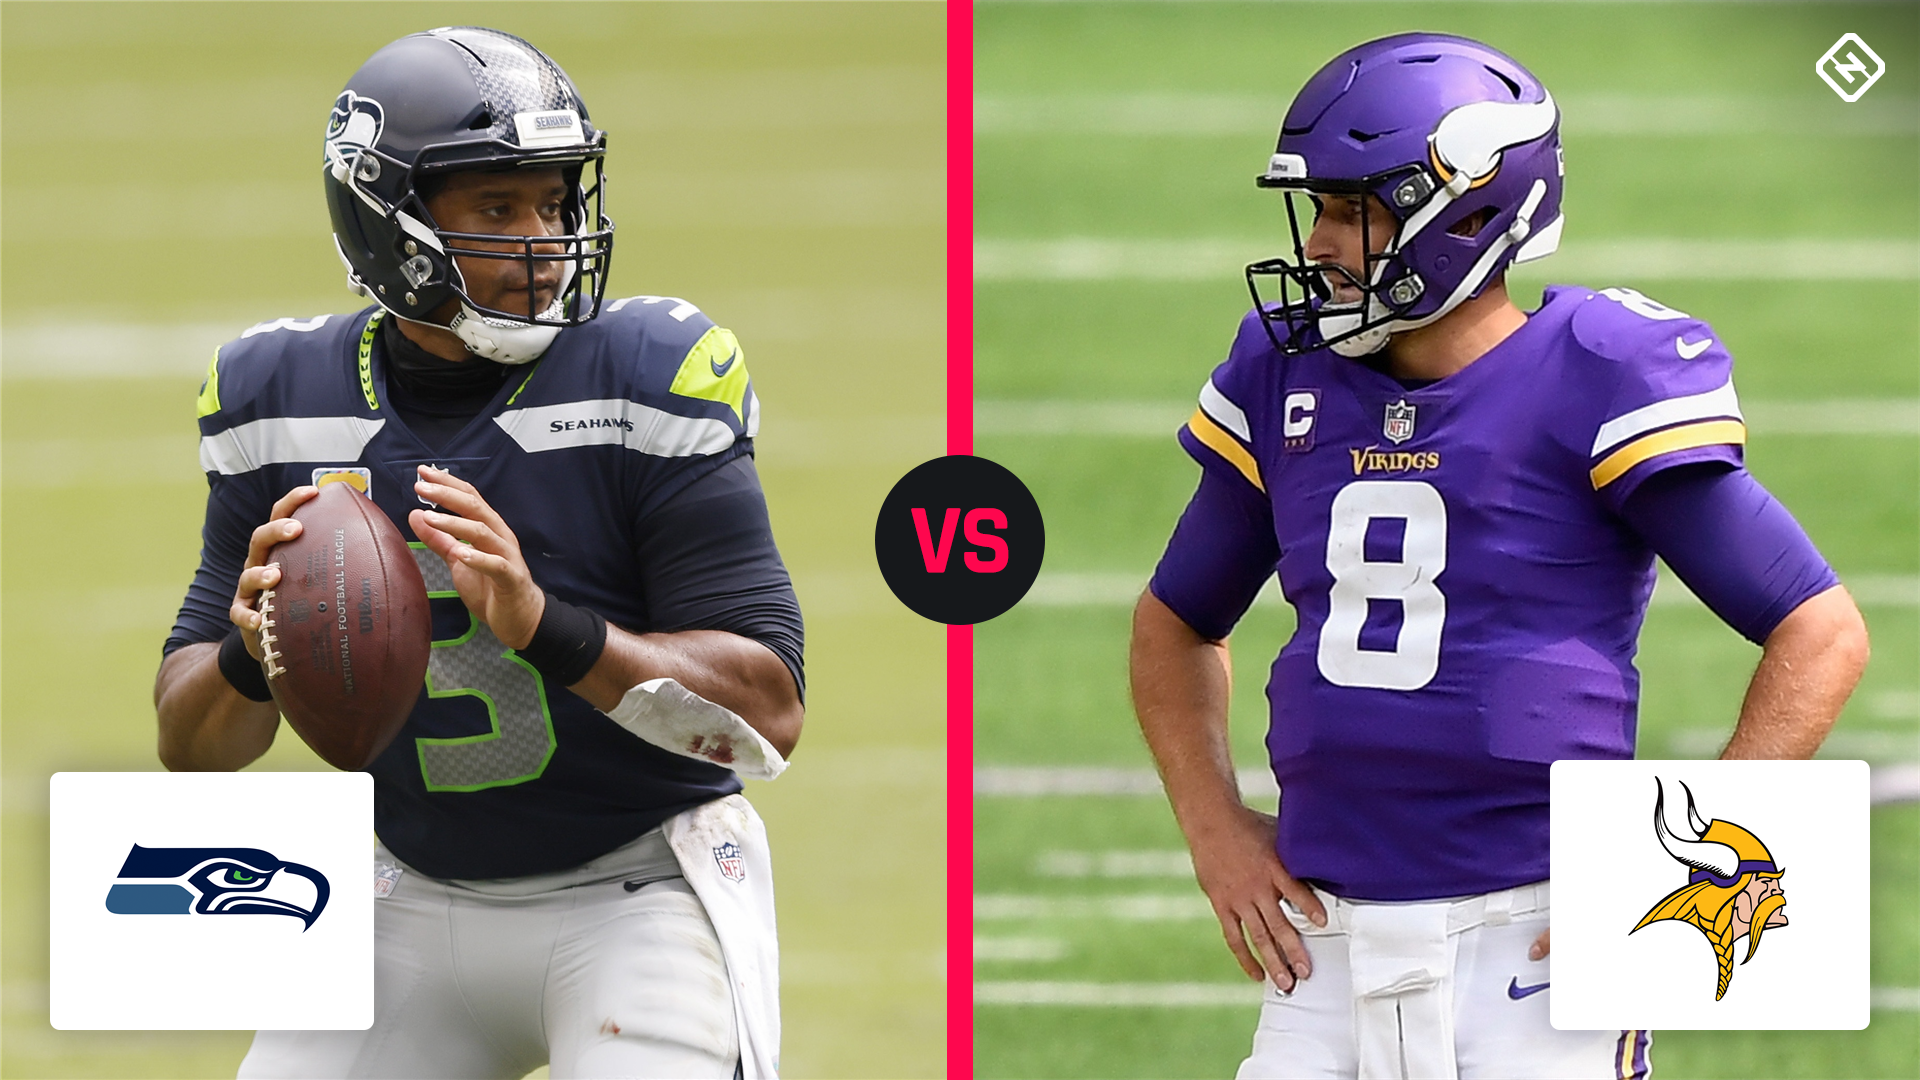 Seahawks vikings betting line arena betting online